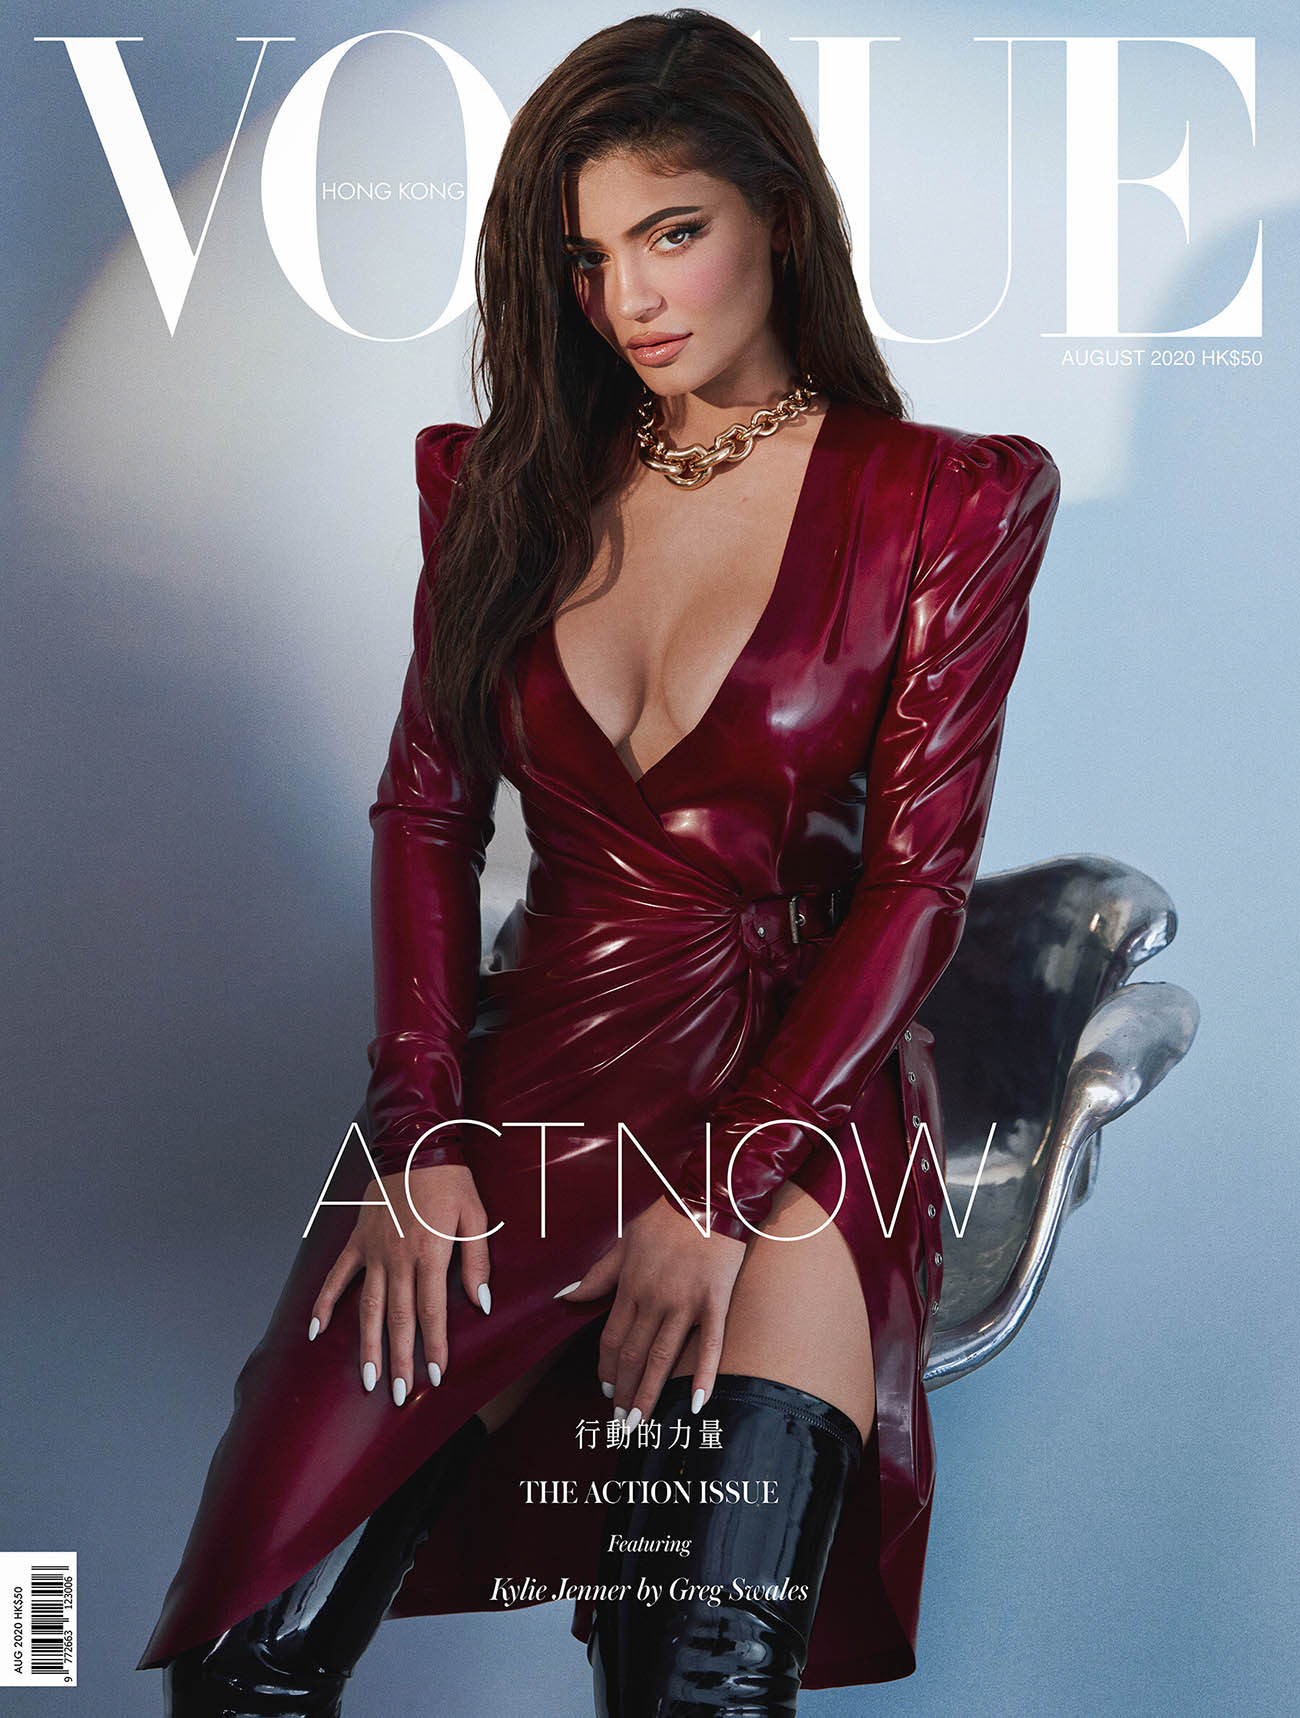 Kylie Jenner covers Vogue Hong Kong August 2020 by Greg Swales